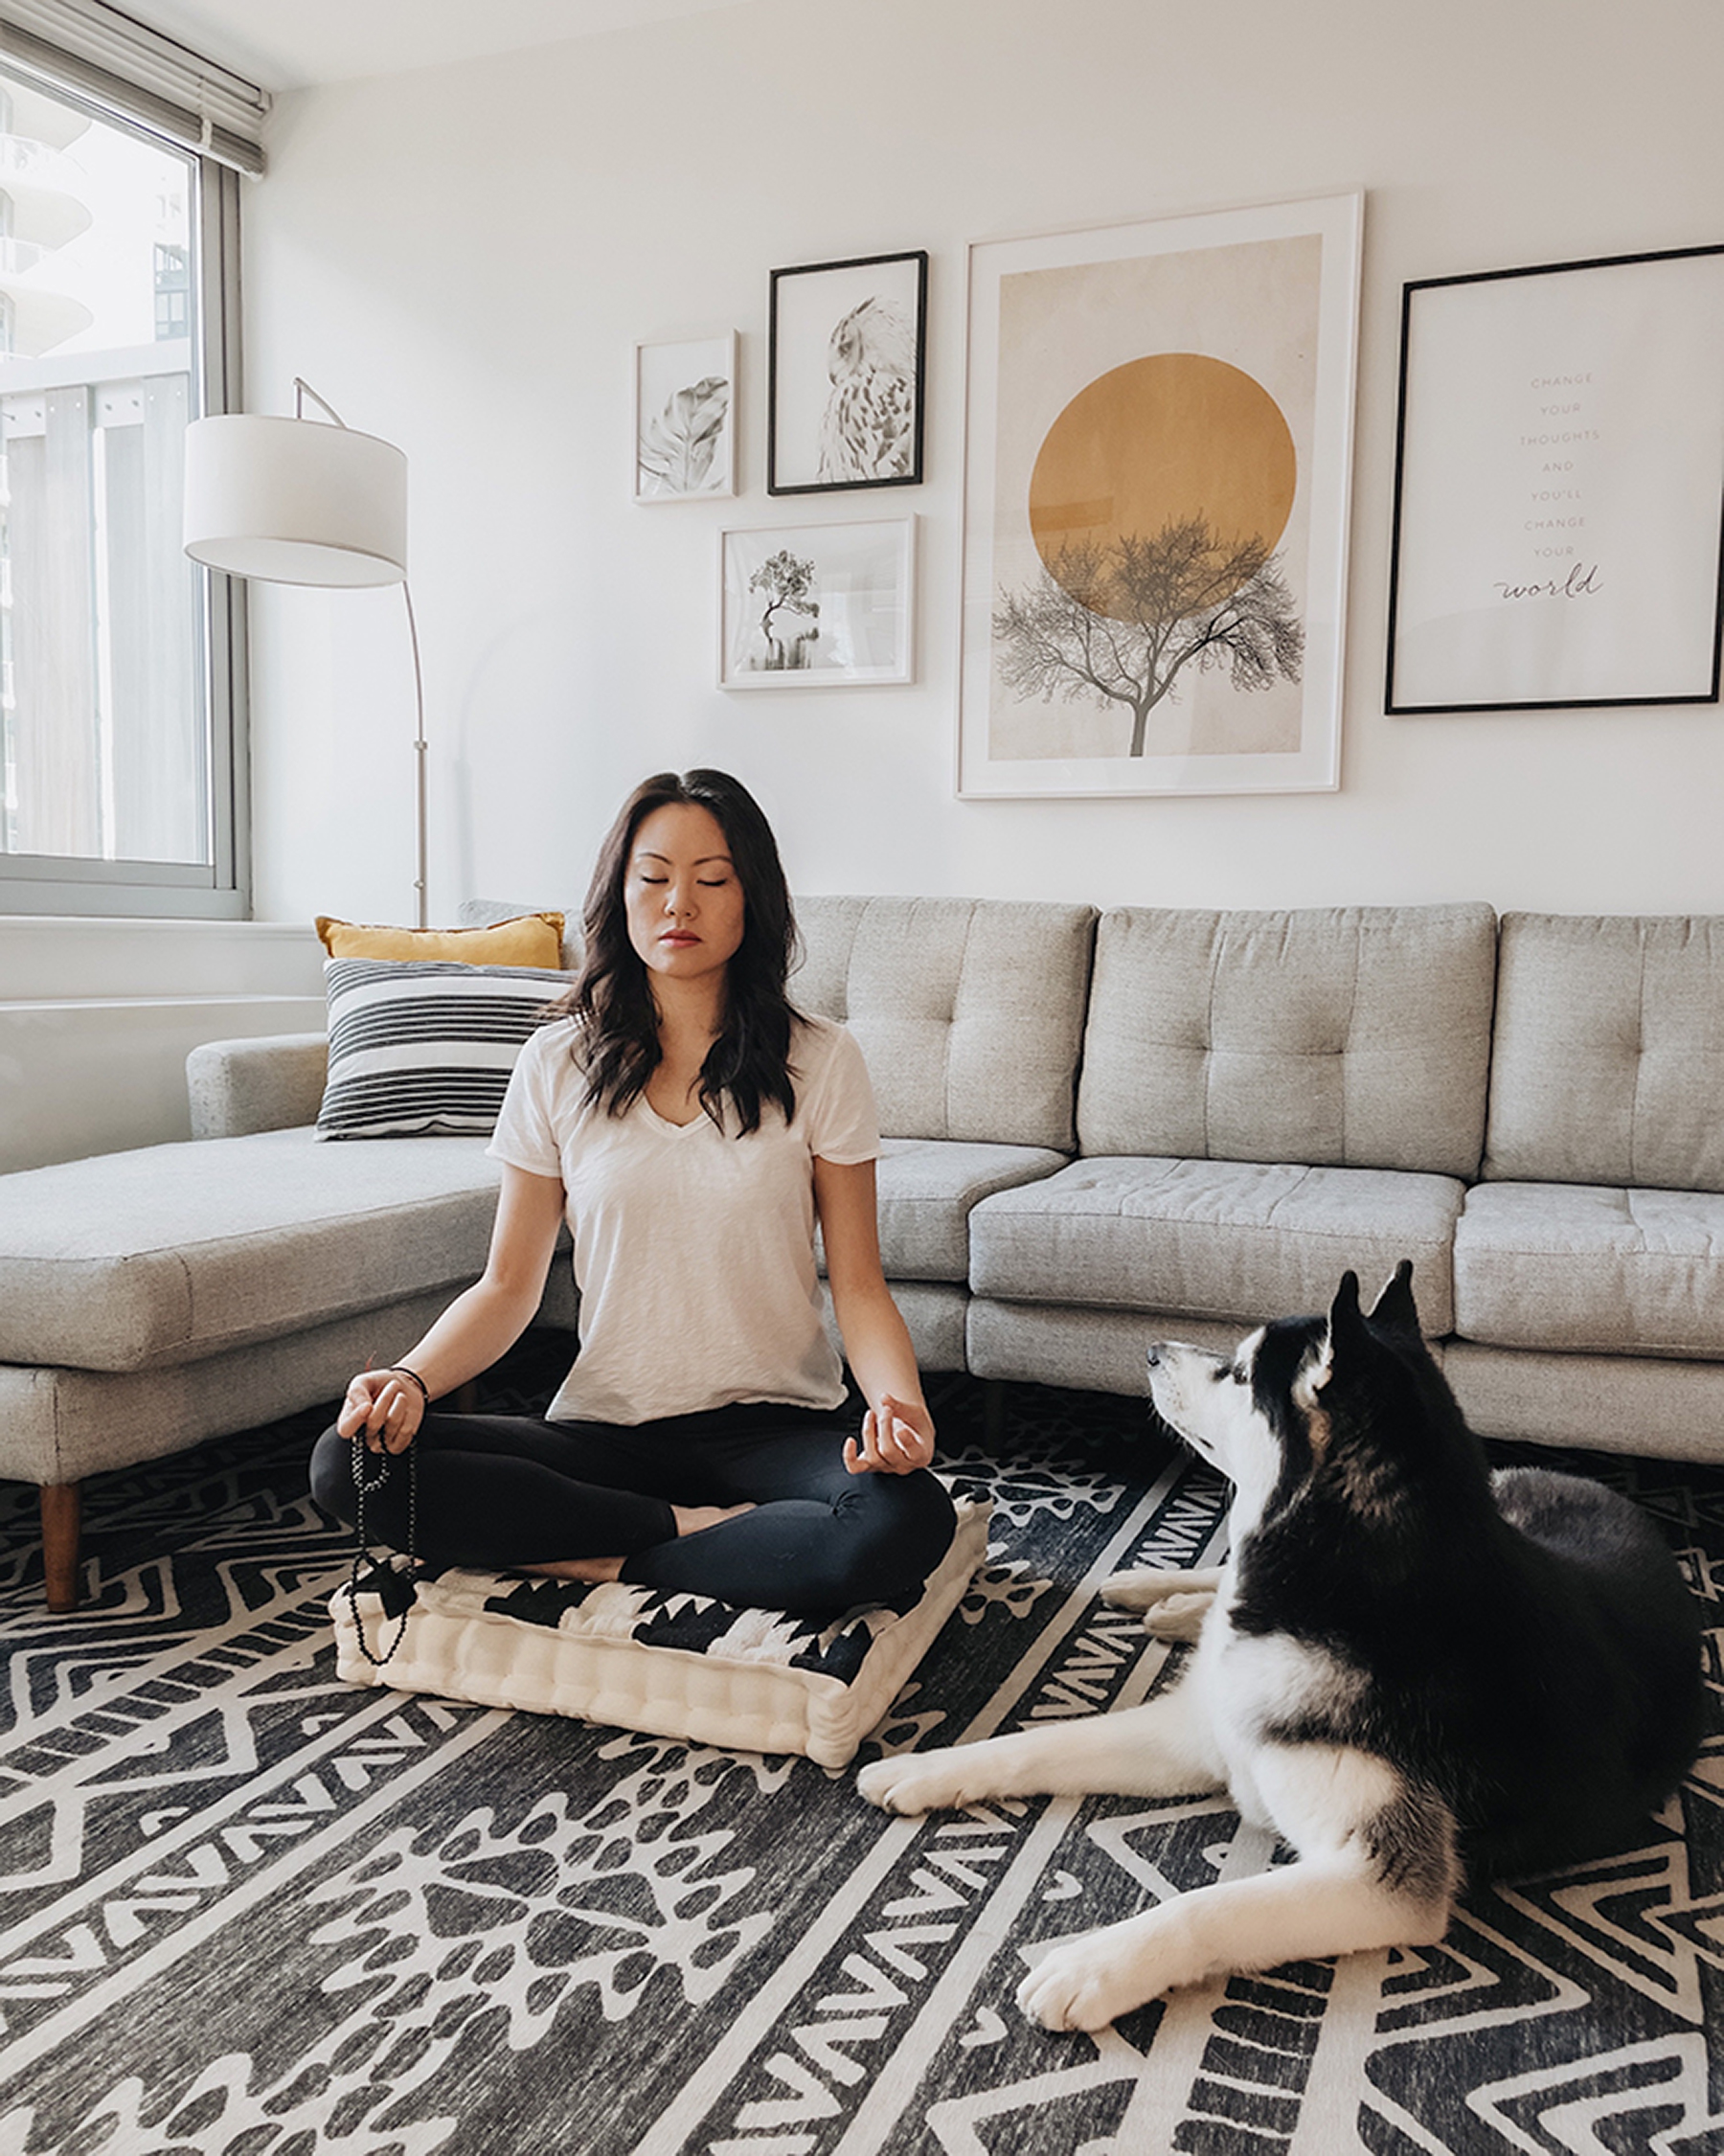 Meditation with your dog